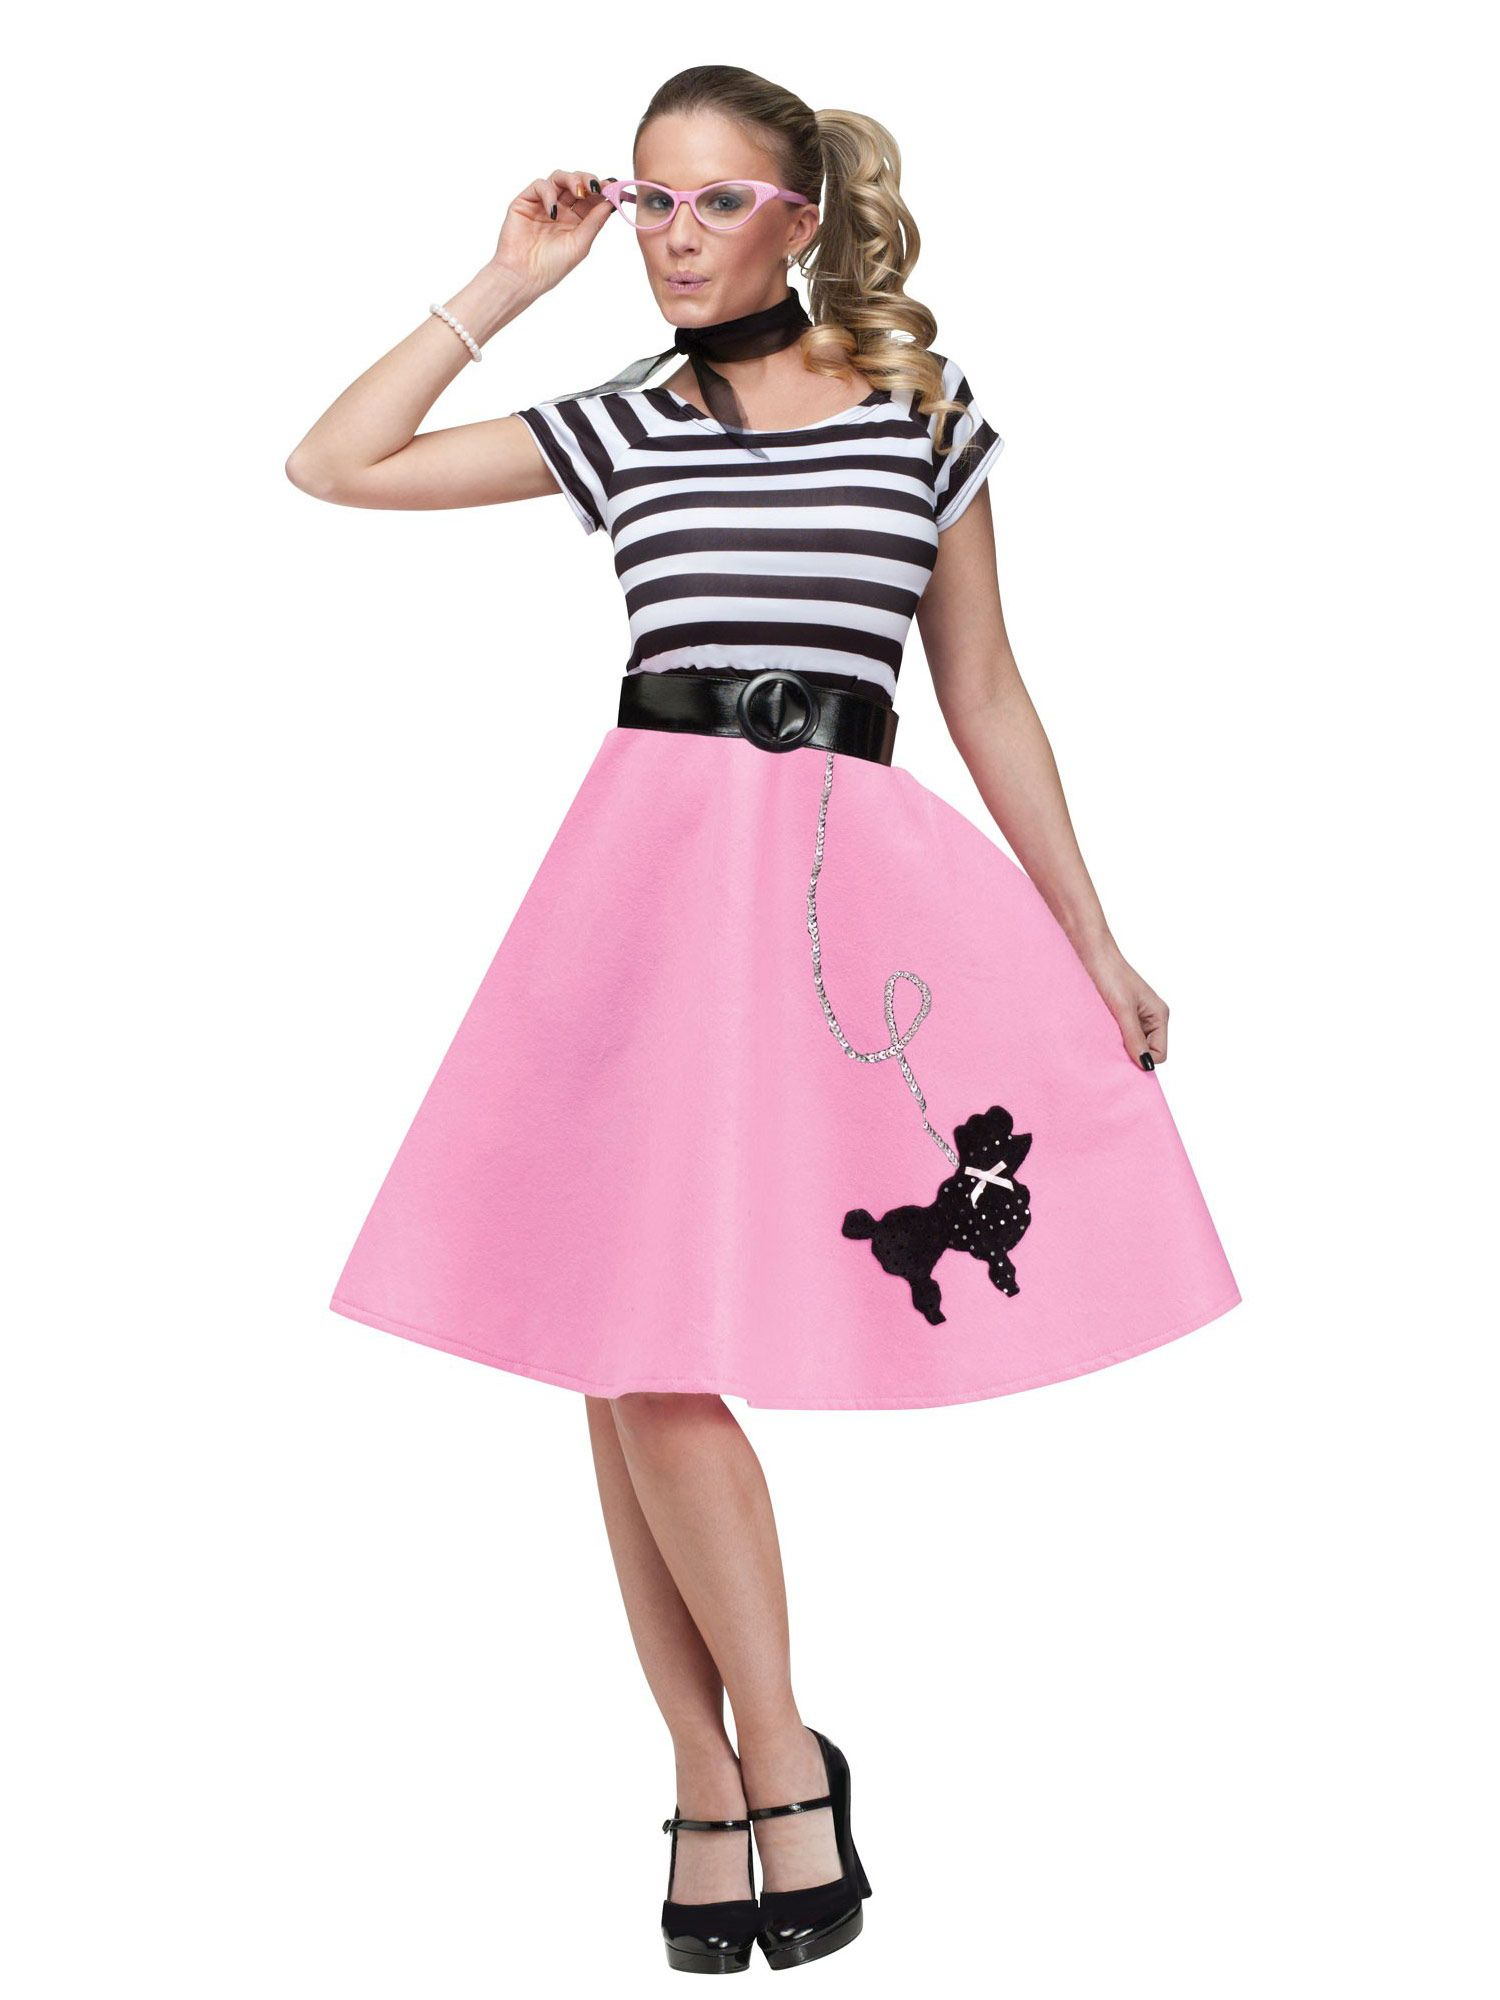 50s Poodle Skirt Adult Dress